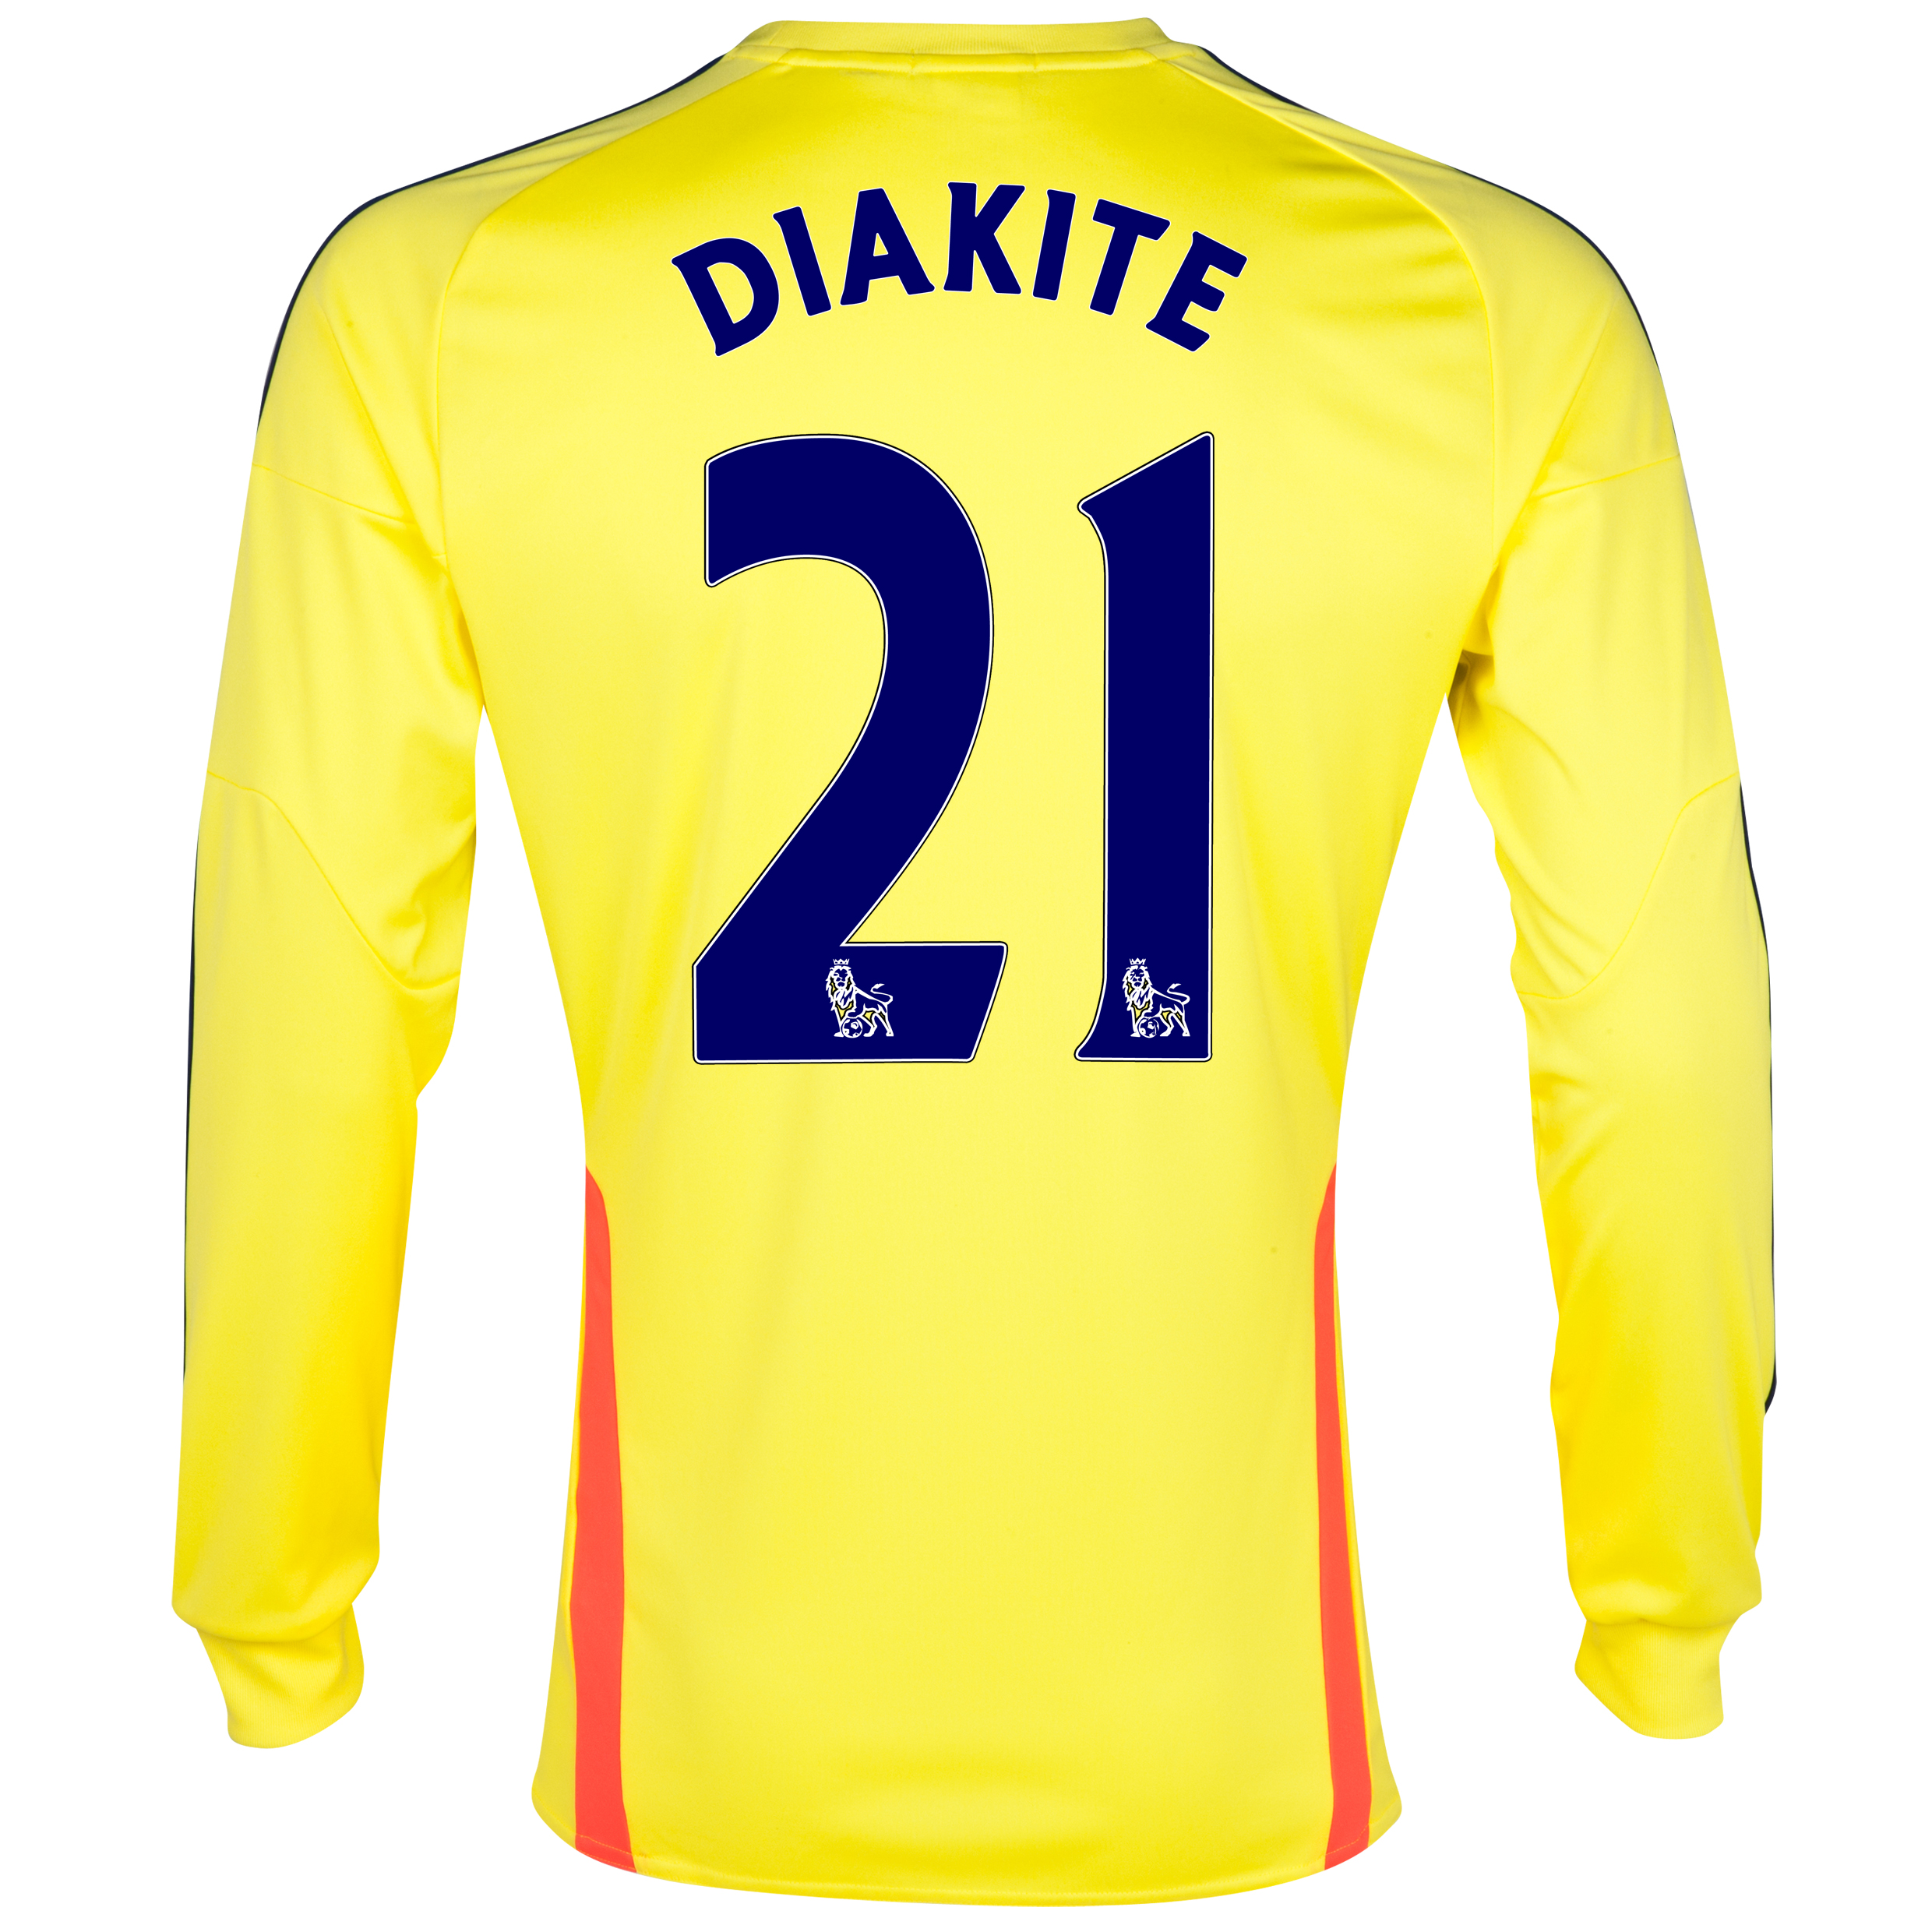 Sunderland Away Shirt 2013/14 - Long Sleeved with Diakite 21 printing